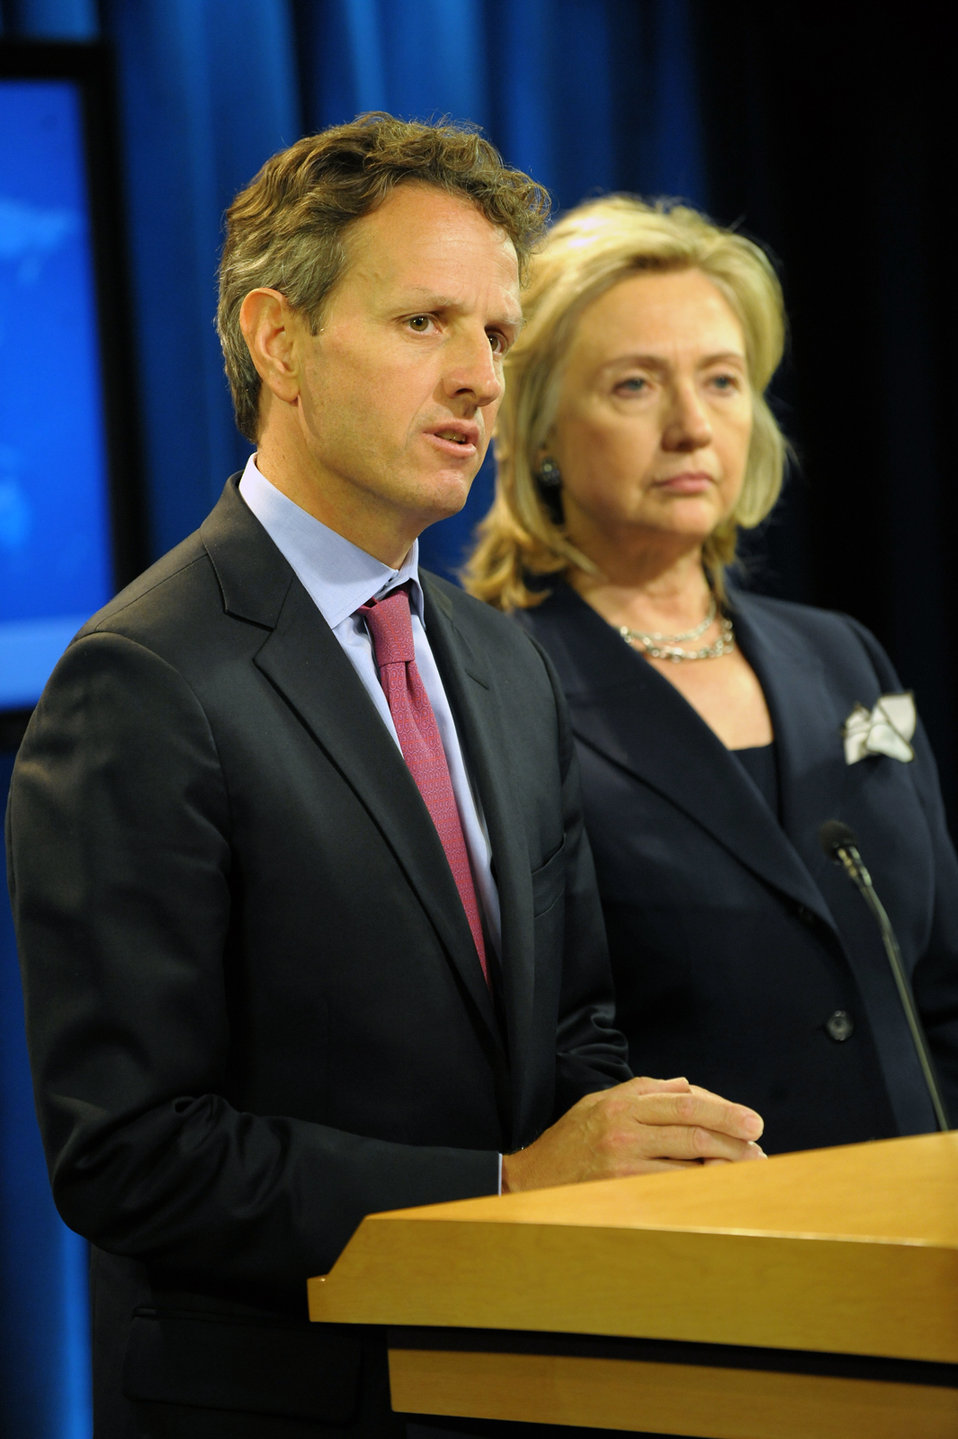 Secretary Geithner and Secretary Clinton Deliver an Announcement of an Executive Order on on Human Rights Designations